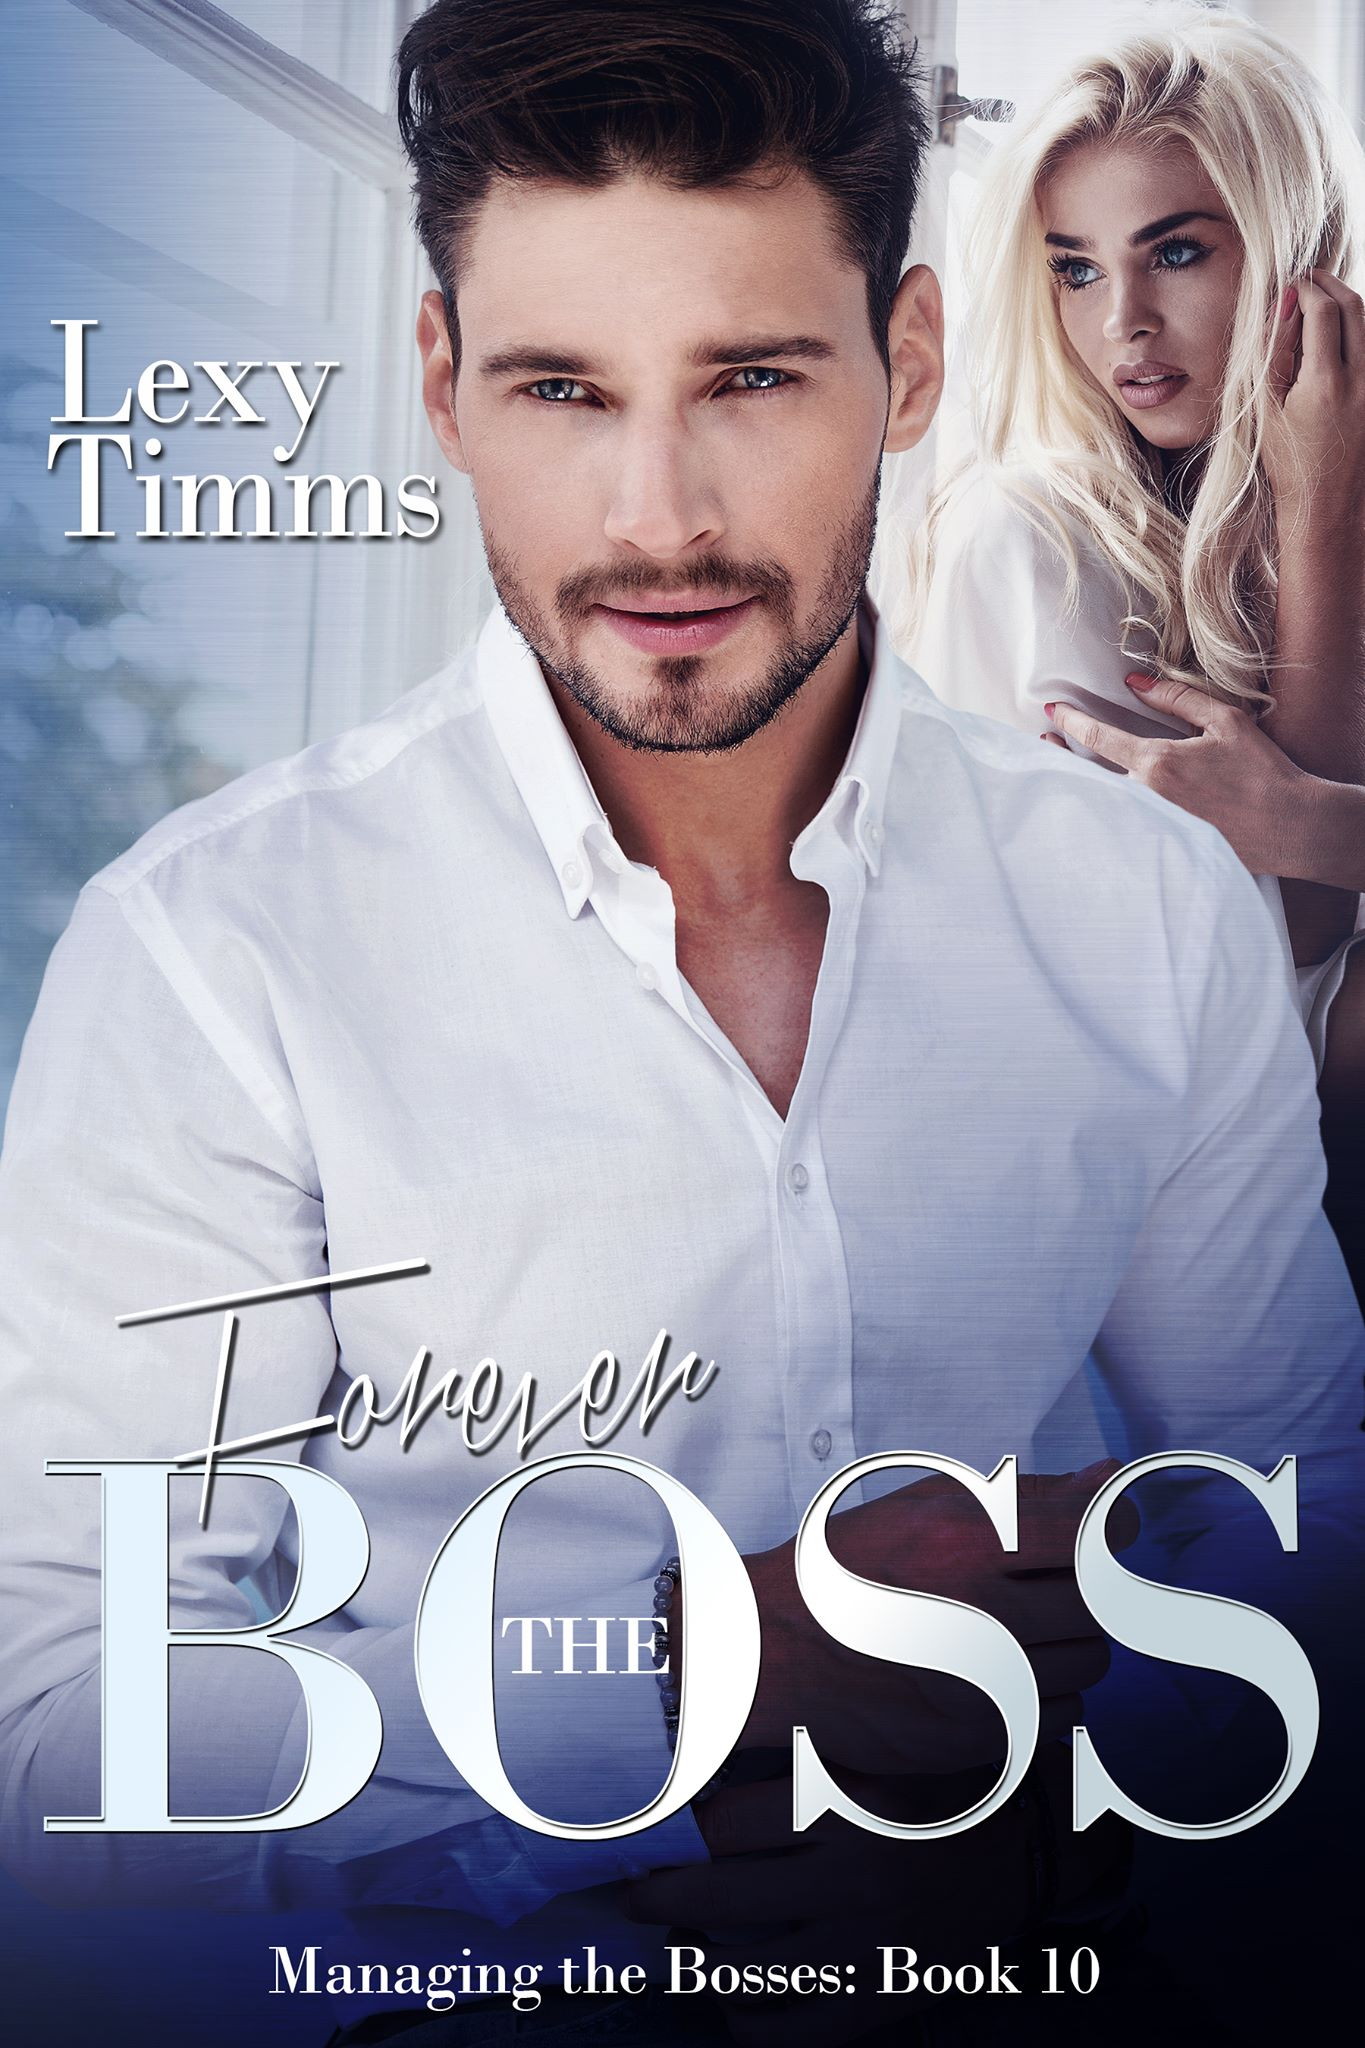 Forever the boss:   (managing the bosses series book 10)